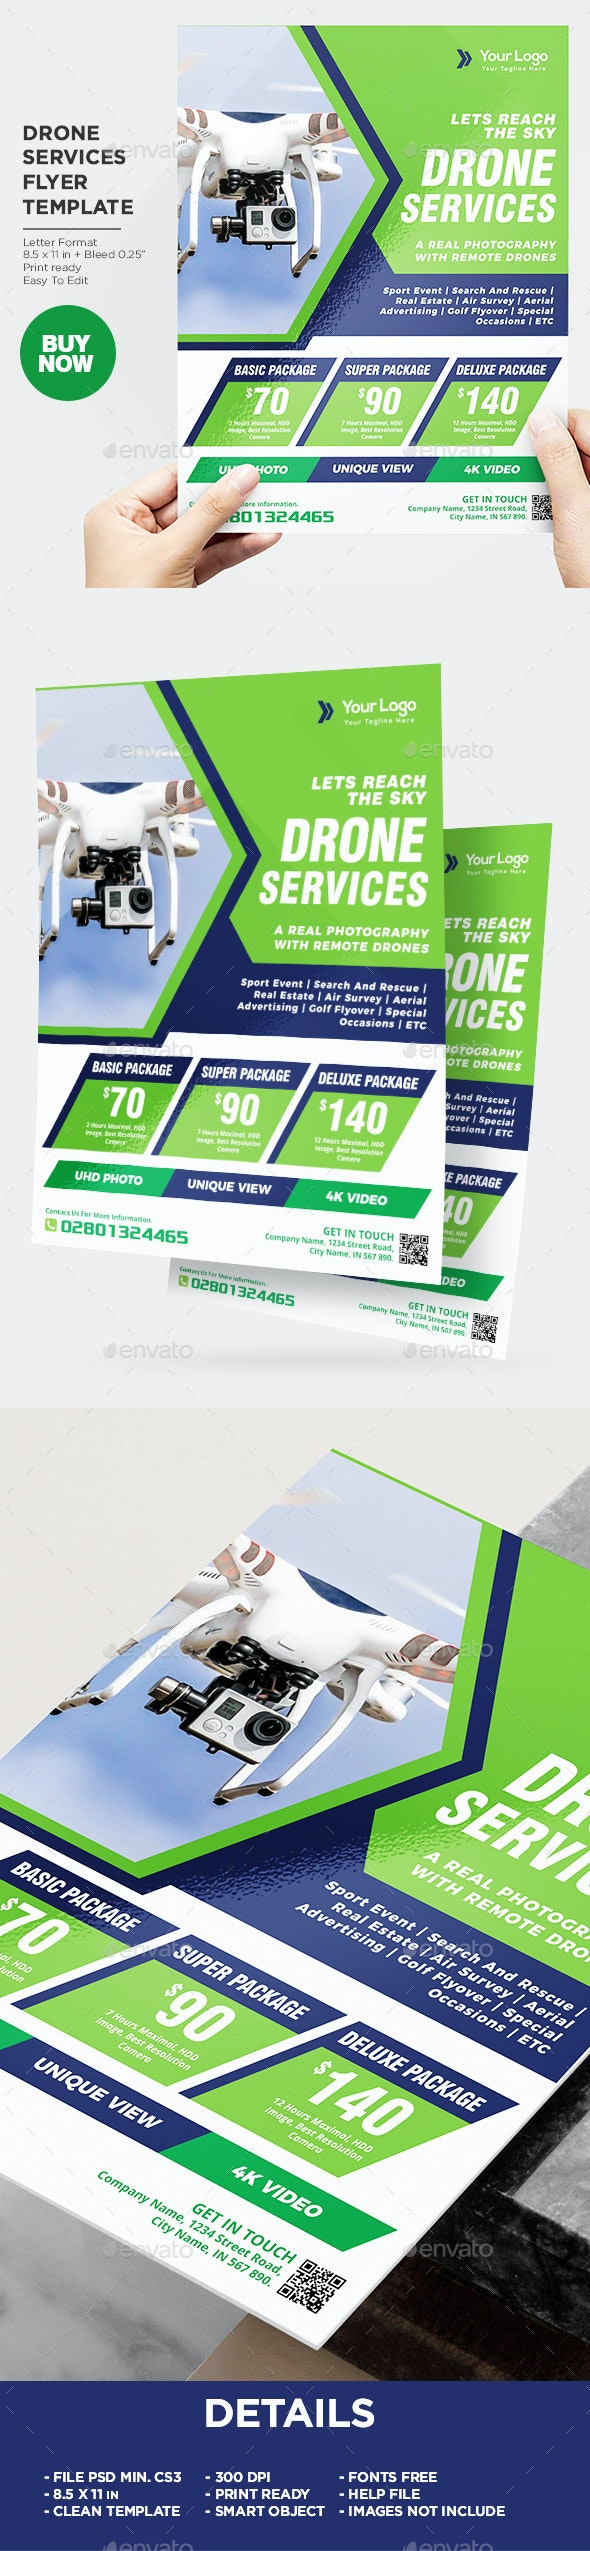 Drone Services Flyer Template - Commerce Flyers